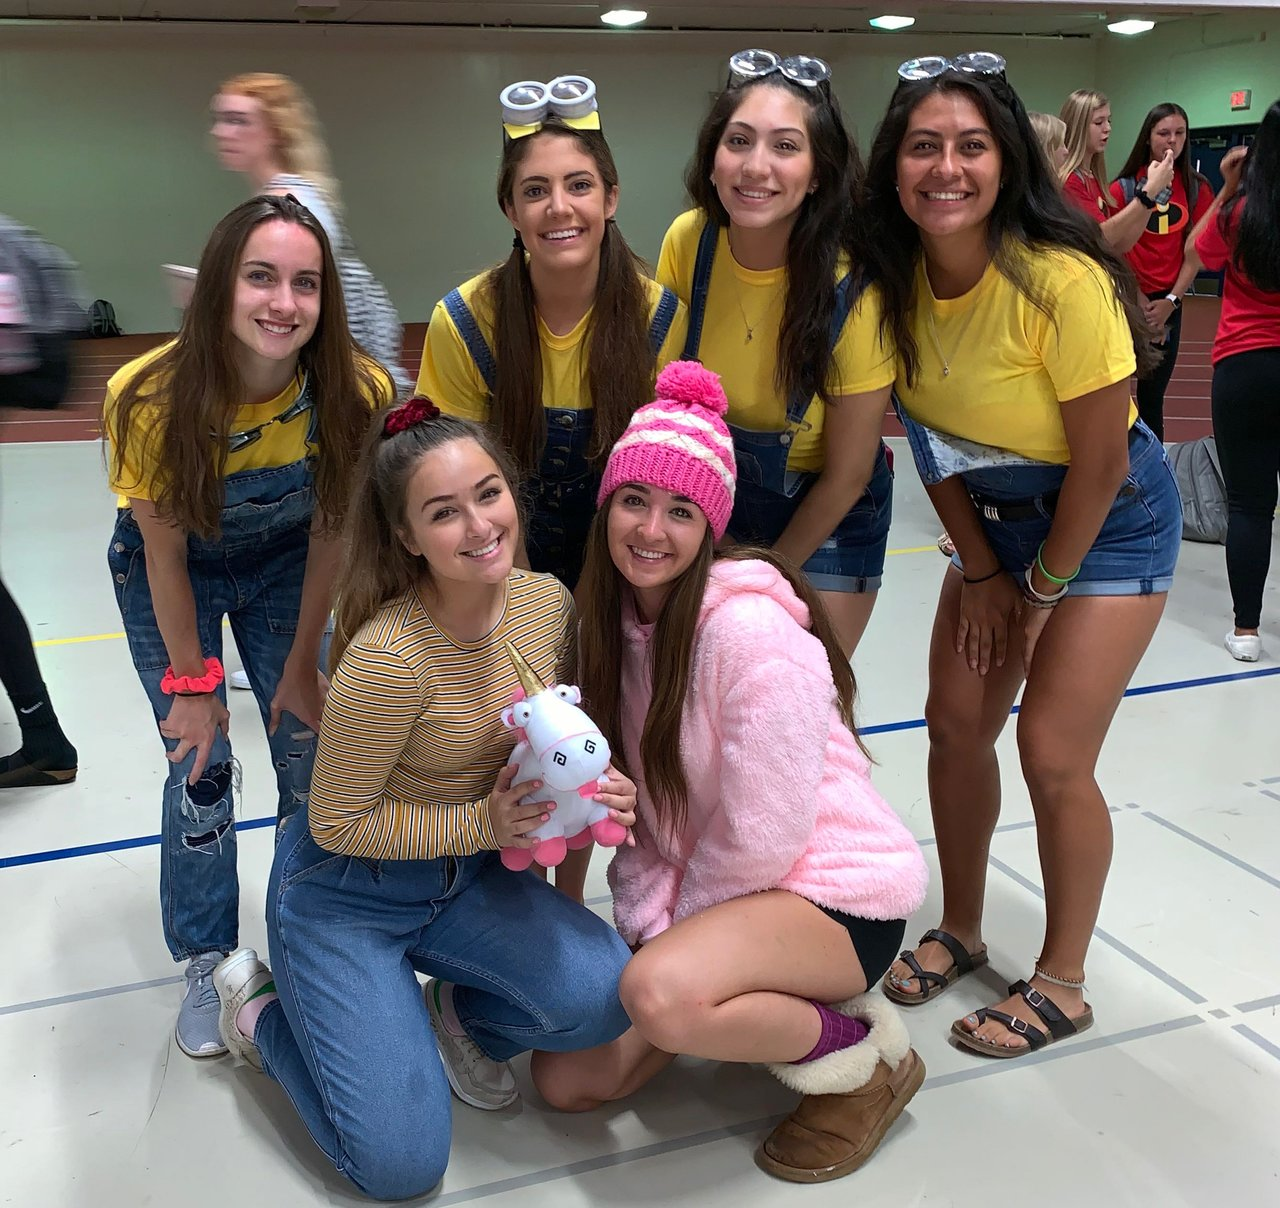 Senior girls dress up as characters from the popular Disney movie Despicable Me.  Top left to right: Jenna Valenti, Kyra Feltz, Gloria Vargas, Adriana Patino.  Bottom Row left to right: Hanna Dworkin, Hannah Troy